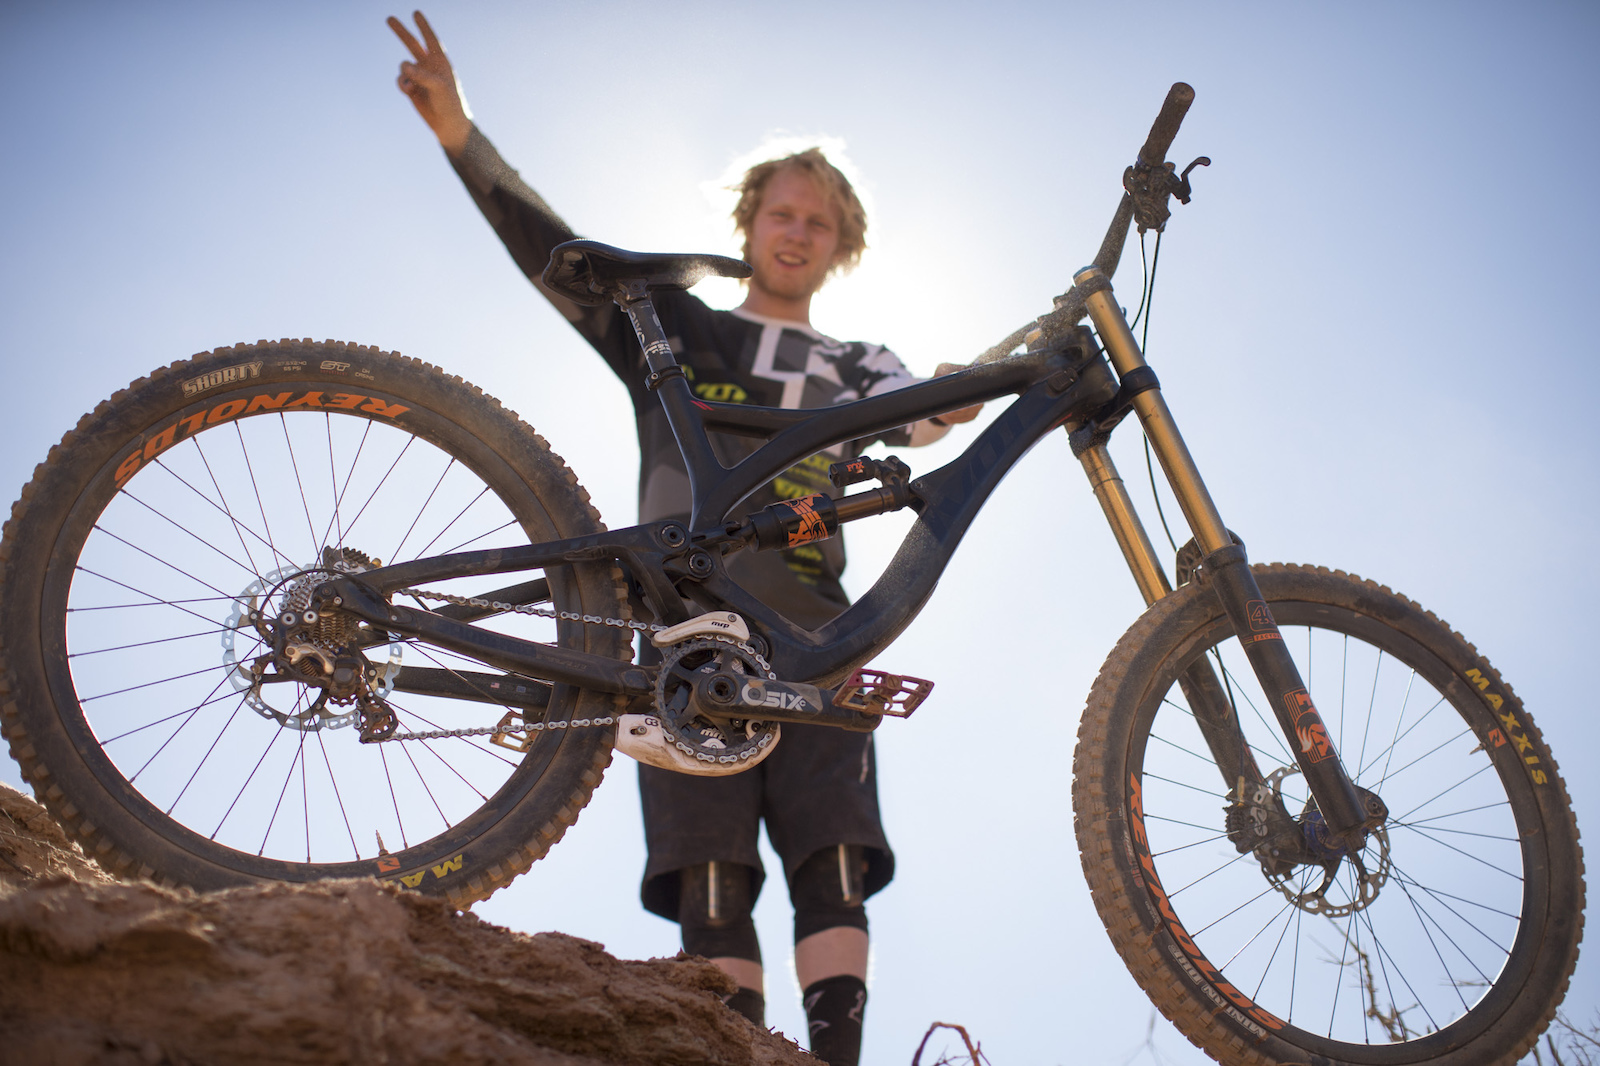 Bernard Kerr at RedBull Rampage 2015 Virgin Utah USA